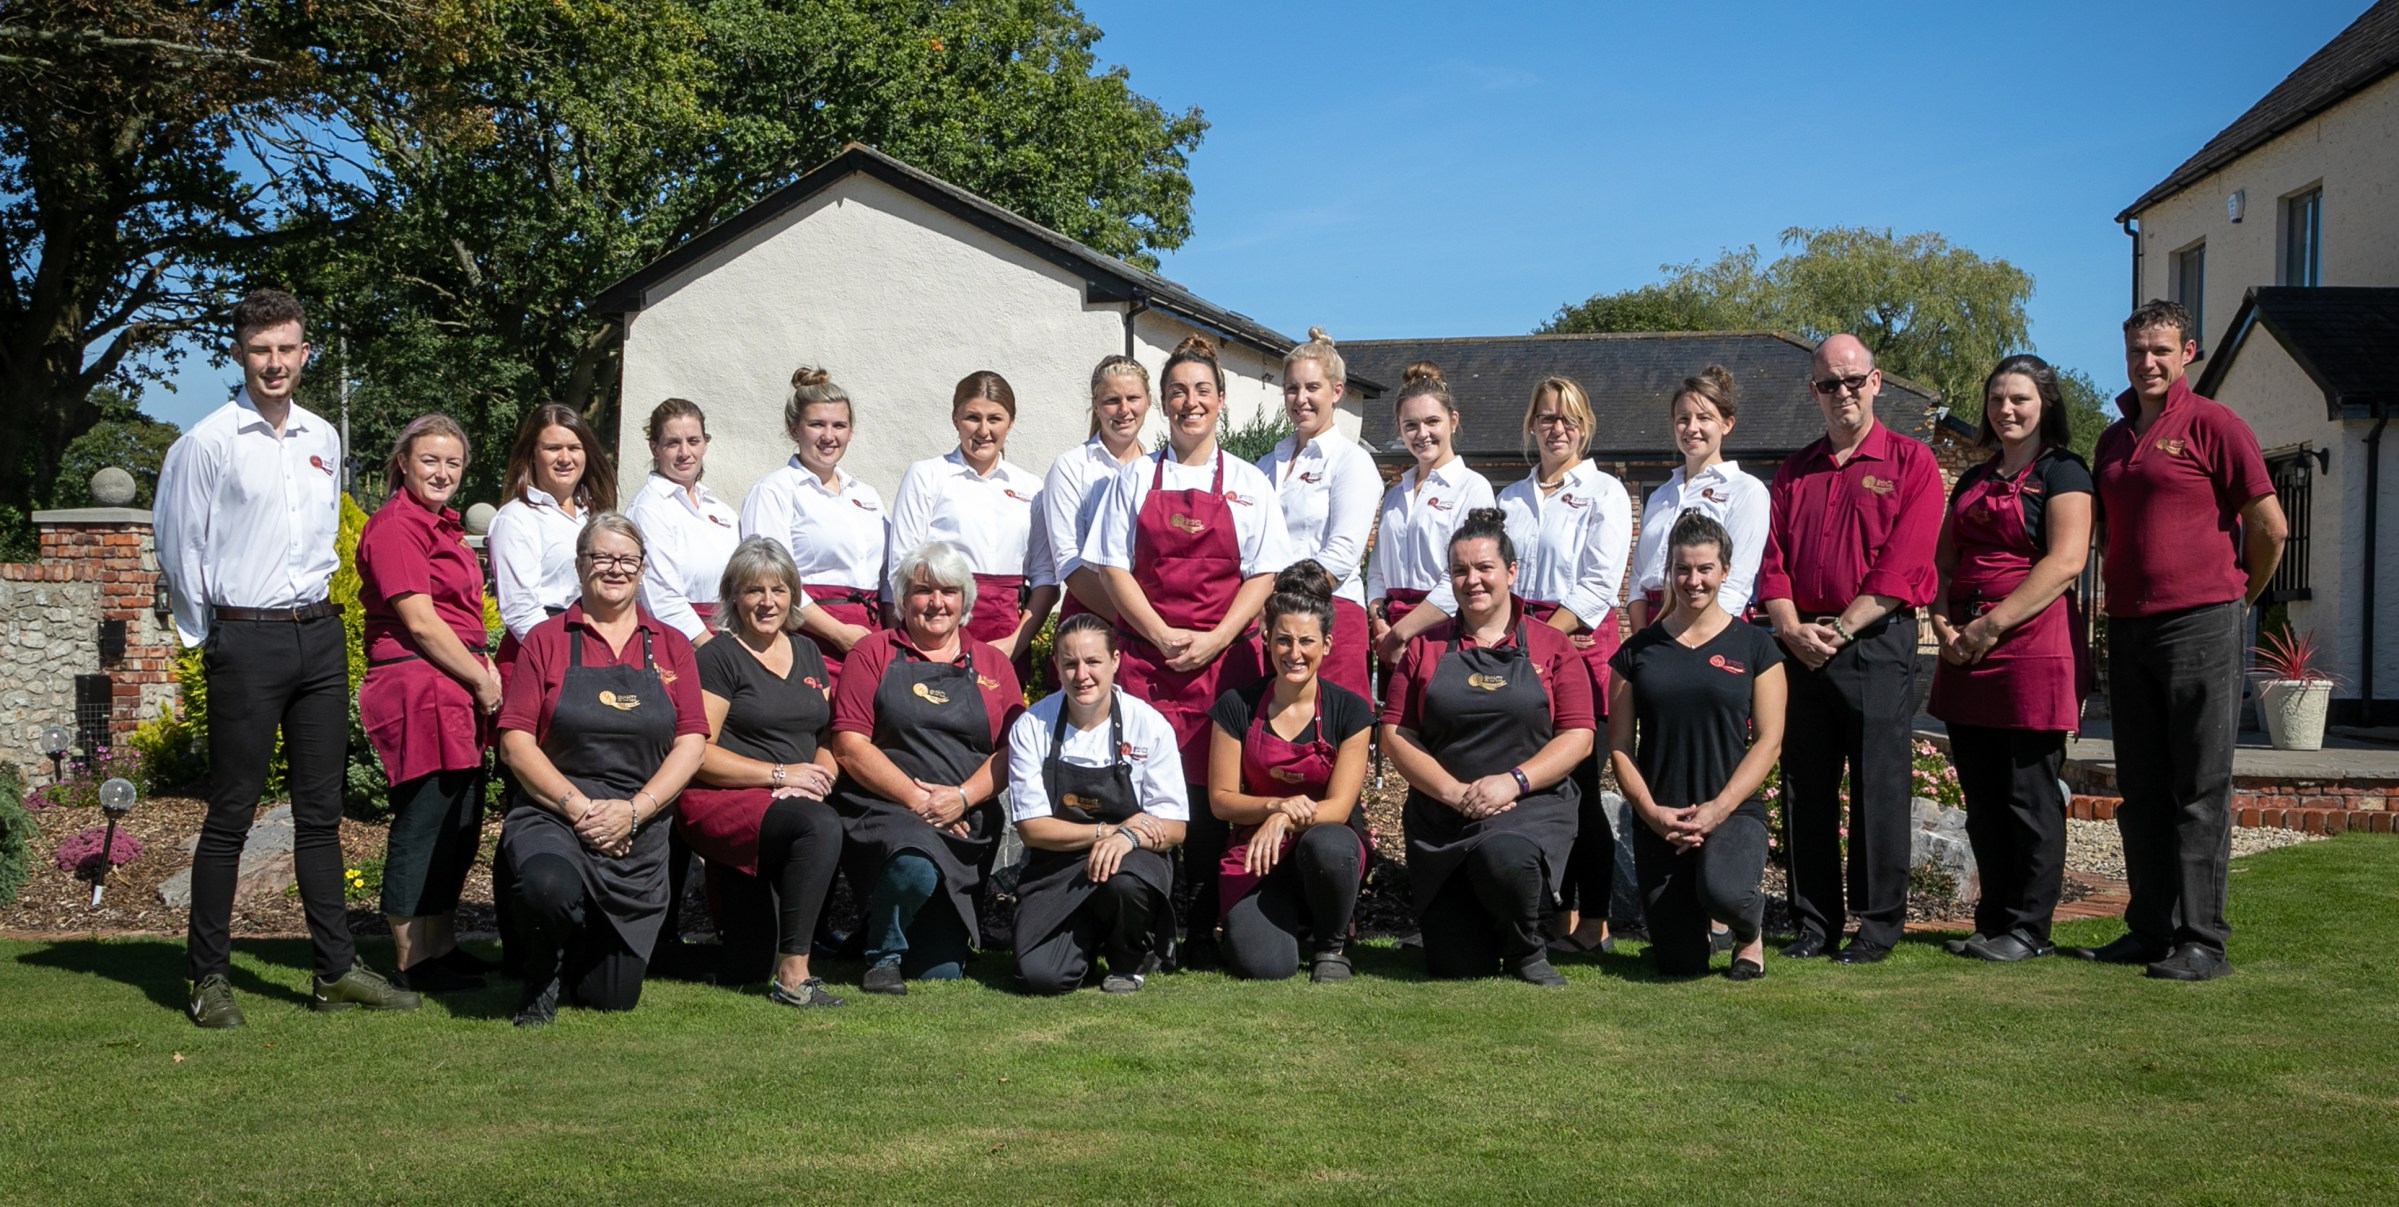 Lin and her team of chefs and staff